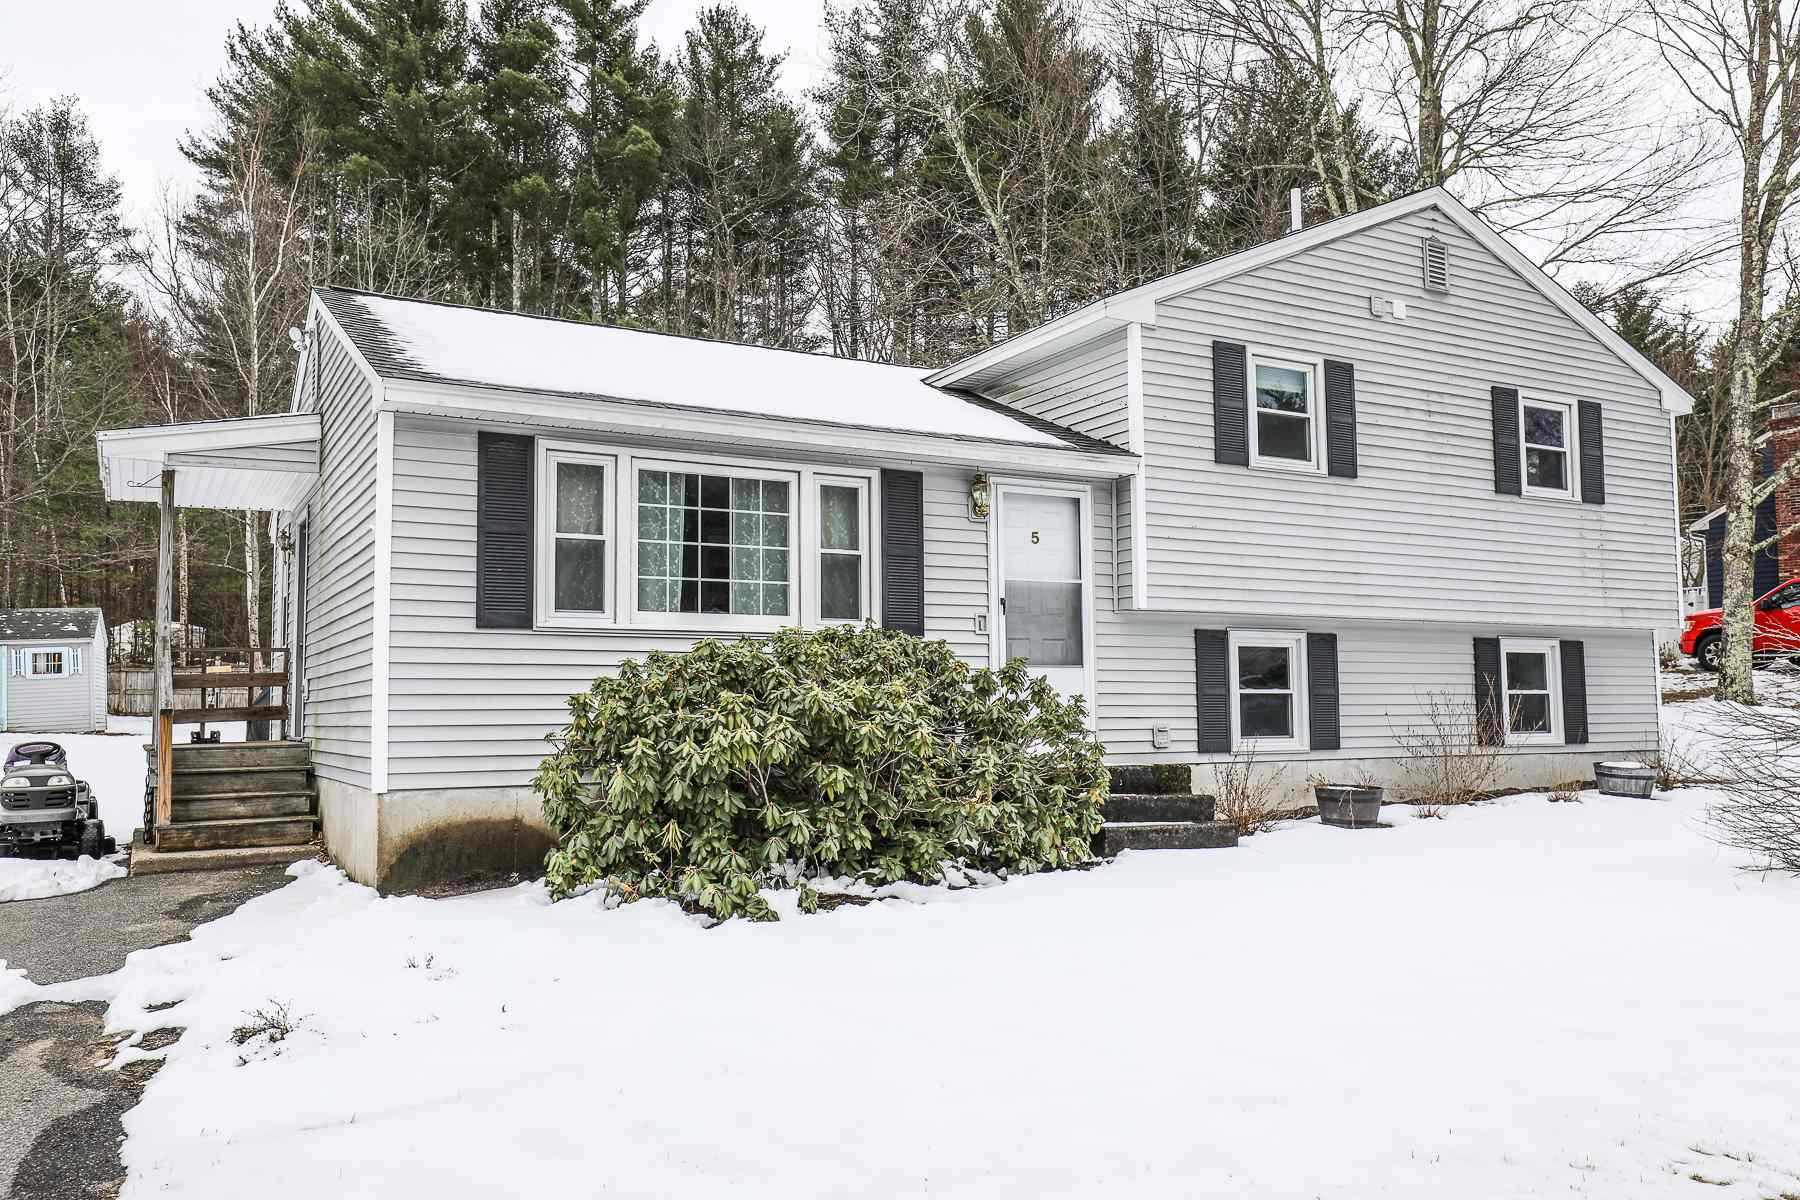 MLS 4799444: 5 Cota Road, Merrimack NH